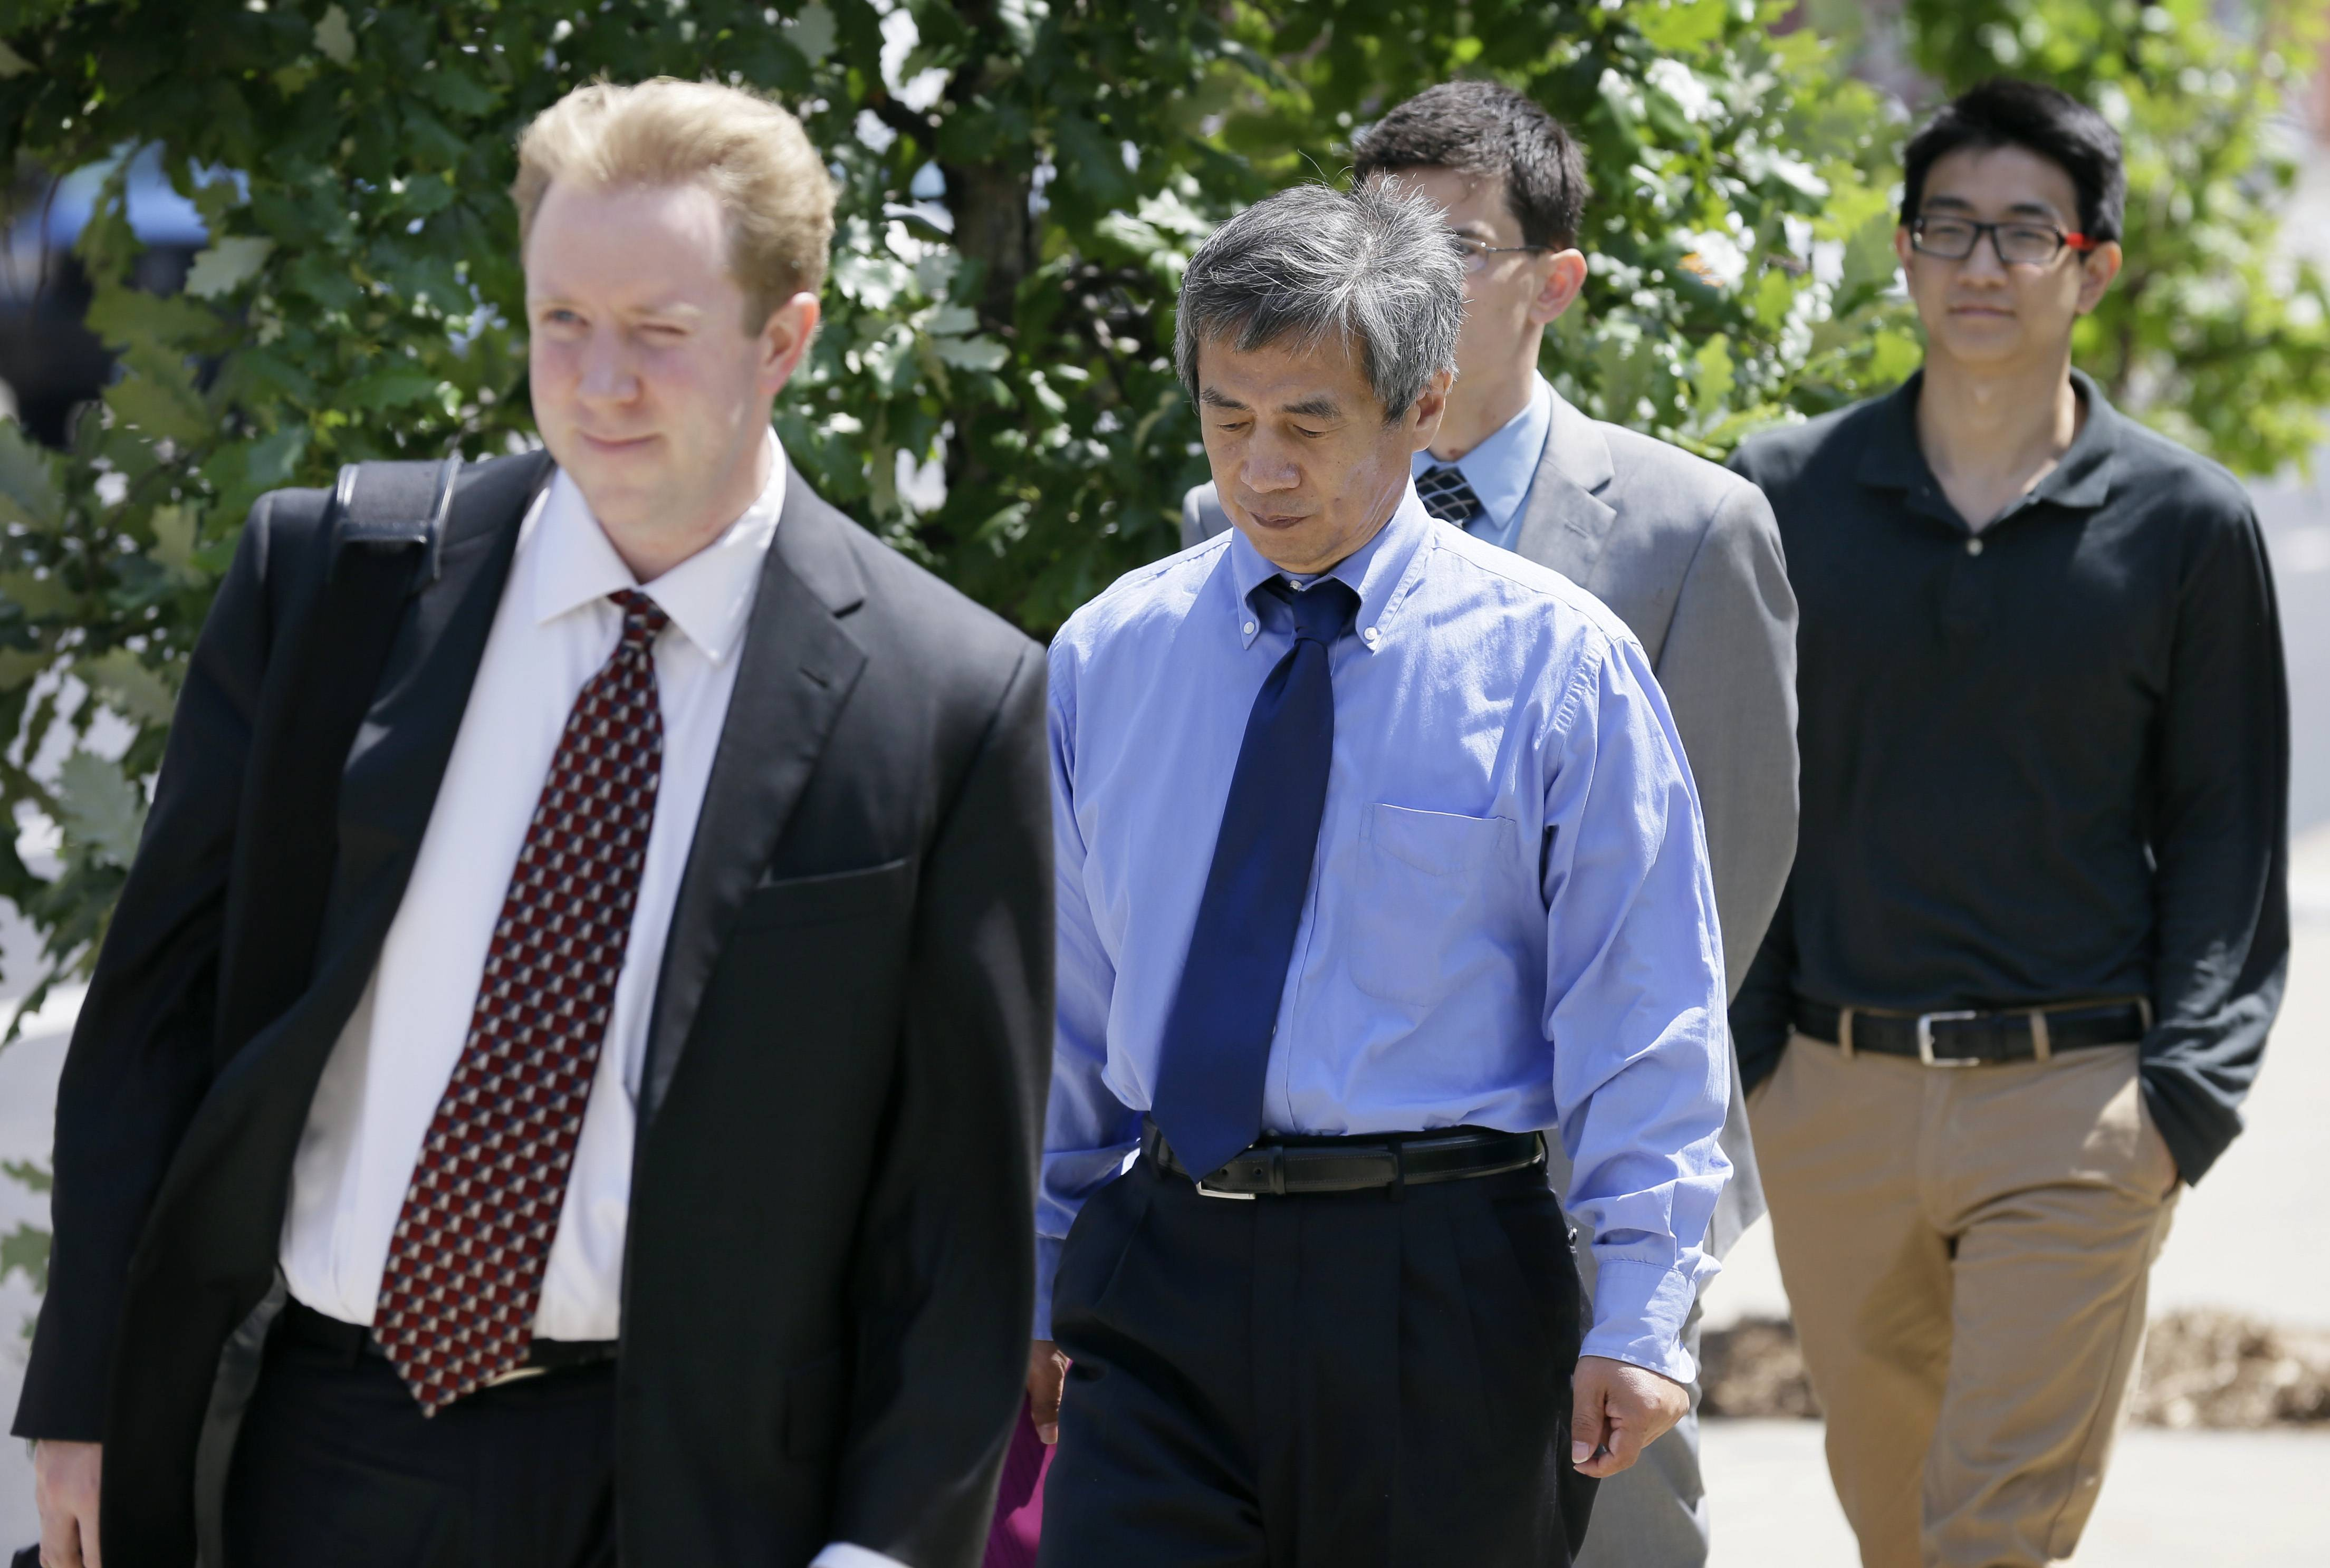 Former Iowa State University researcher Dong-Pyou Han, center, leaves the courthouse with his attorney Joe Herrold, left, Tuesday in Des Moines, Iowa. Han was making his initial court appearance on charges that he falsified data to make a proposed AIDS vaccine appear promising and win millions of dollars in federal grant money.